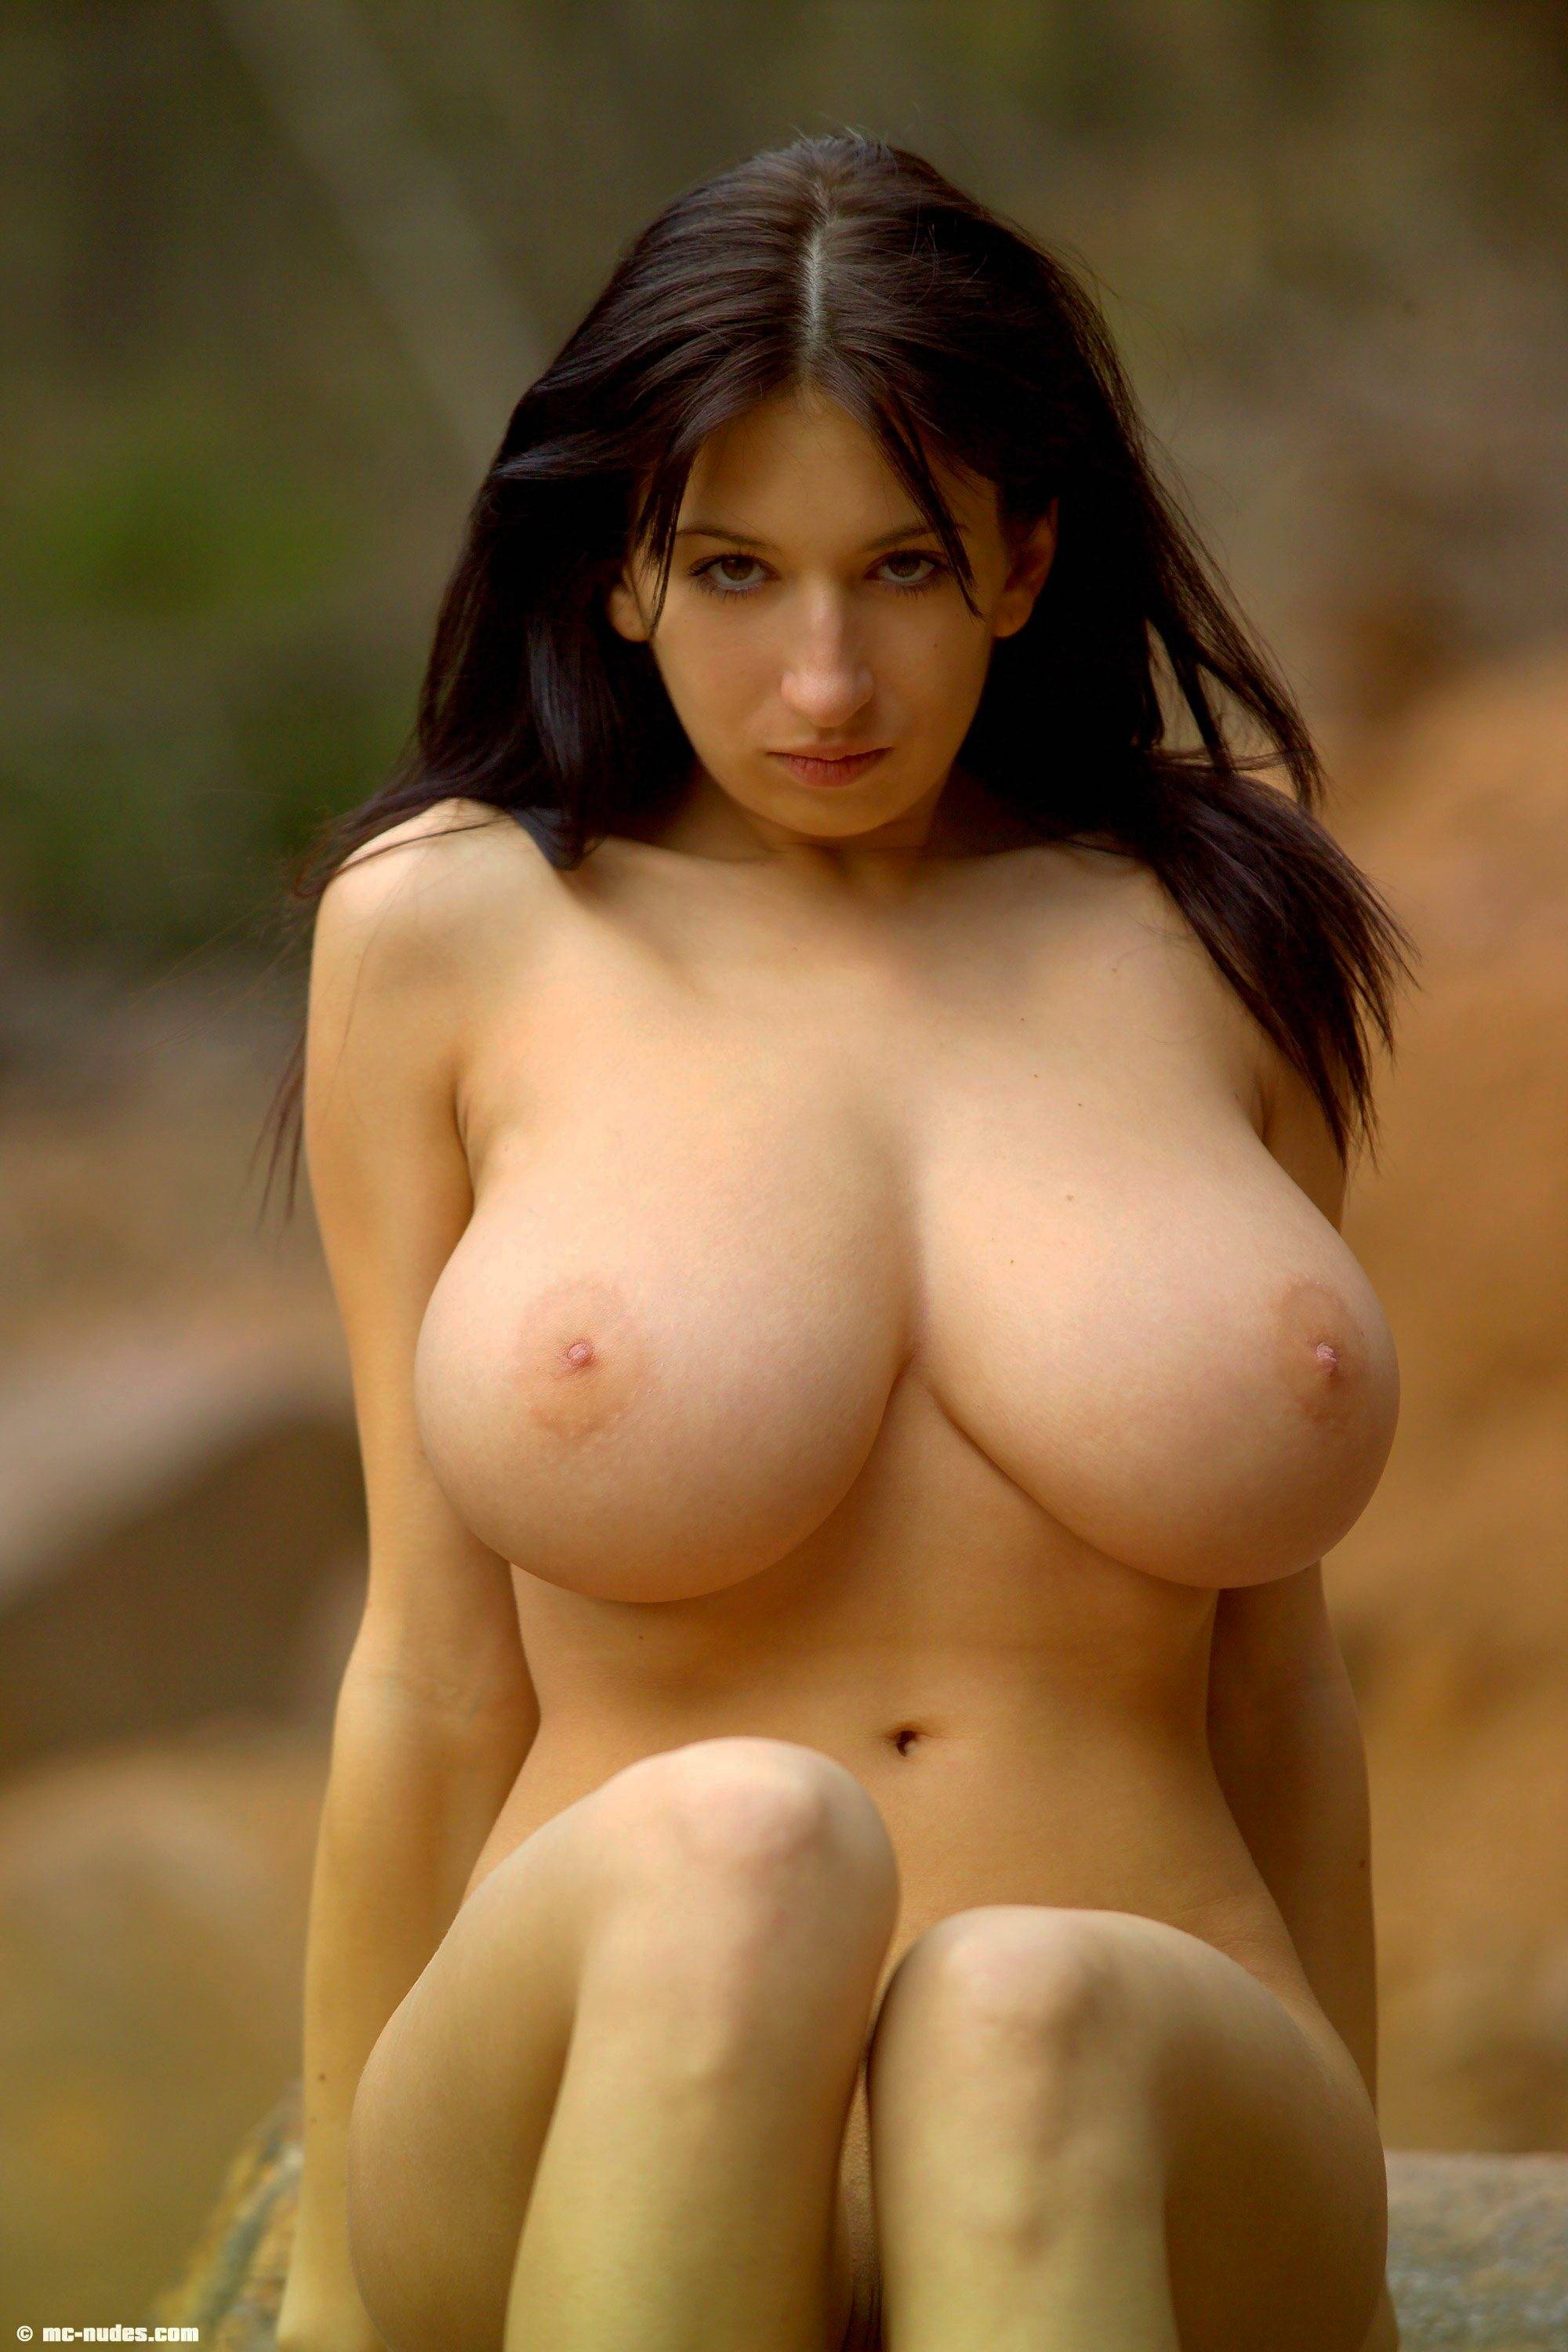 Giant beautiful breasts